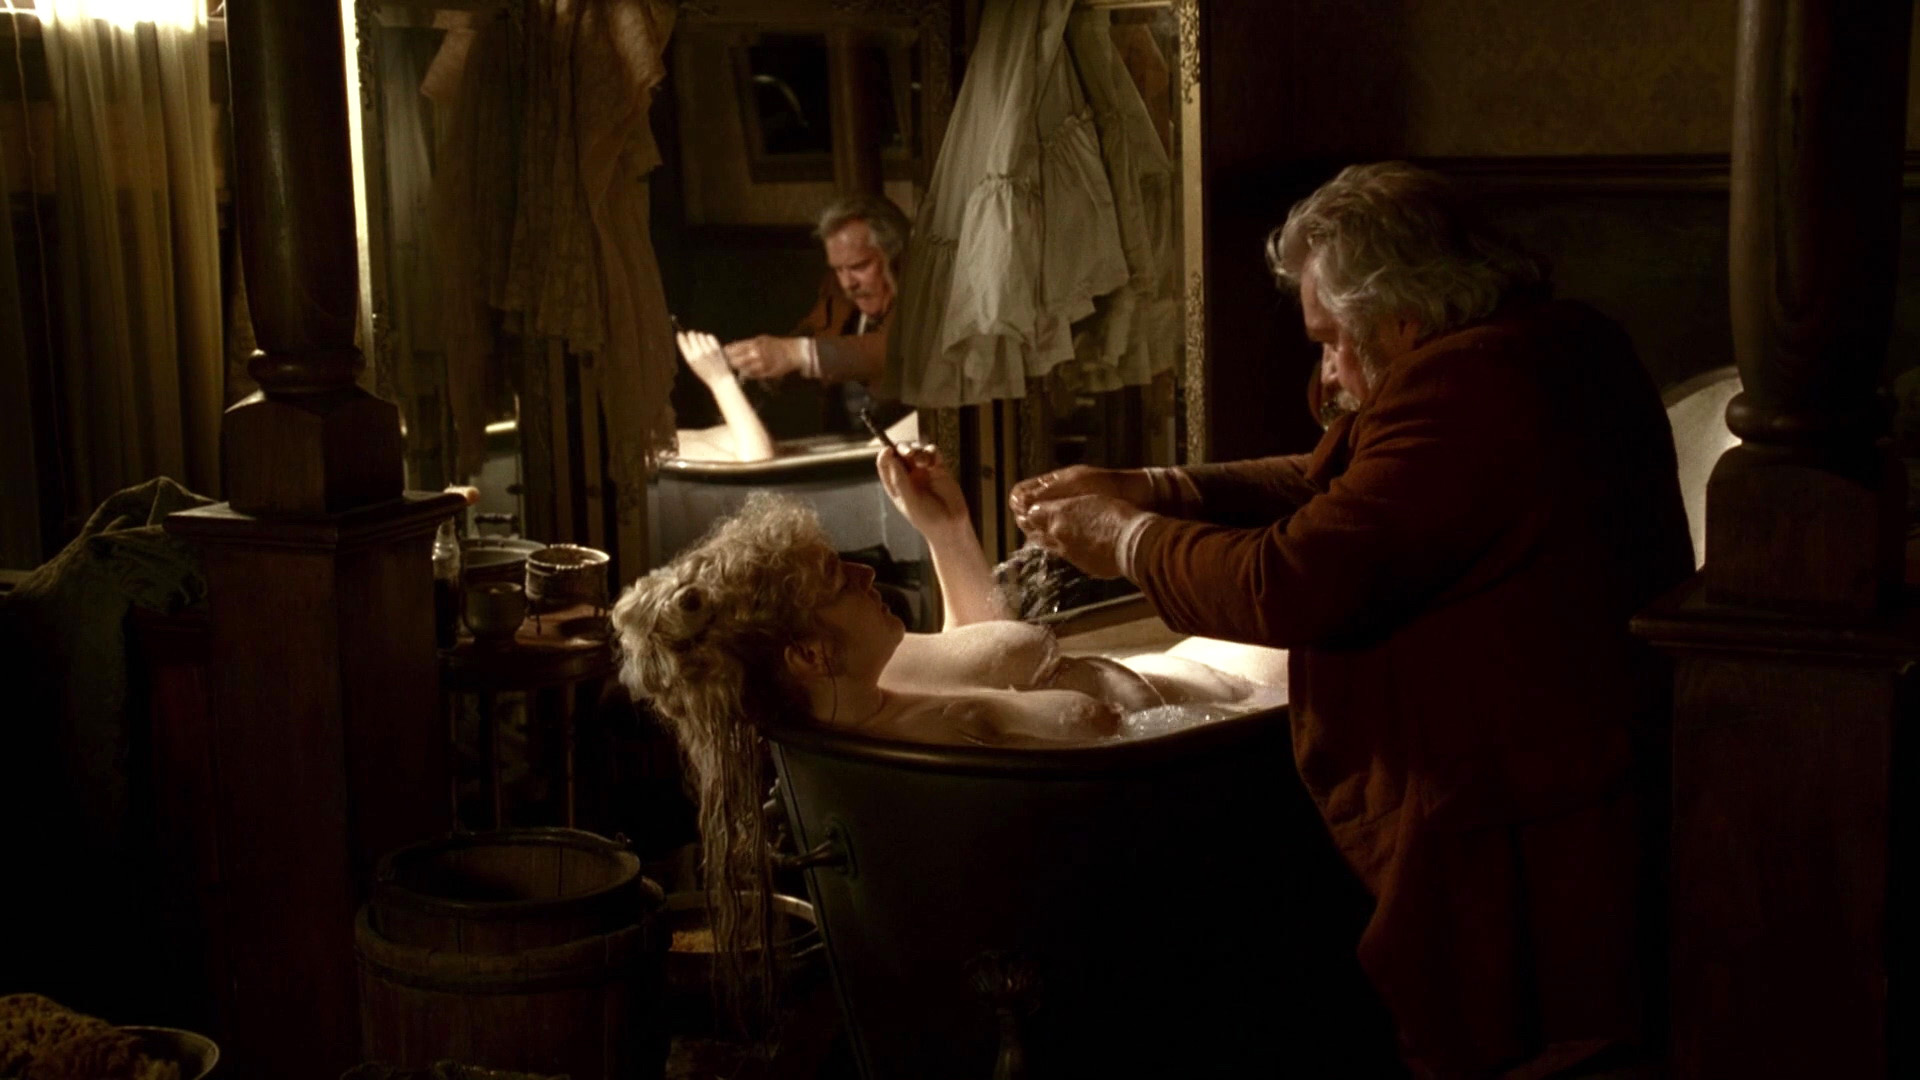 Sarah B. Lund – Deadwood s03e05 (2006) HD 1080p